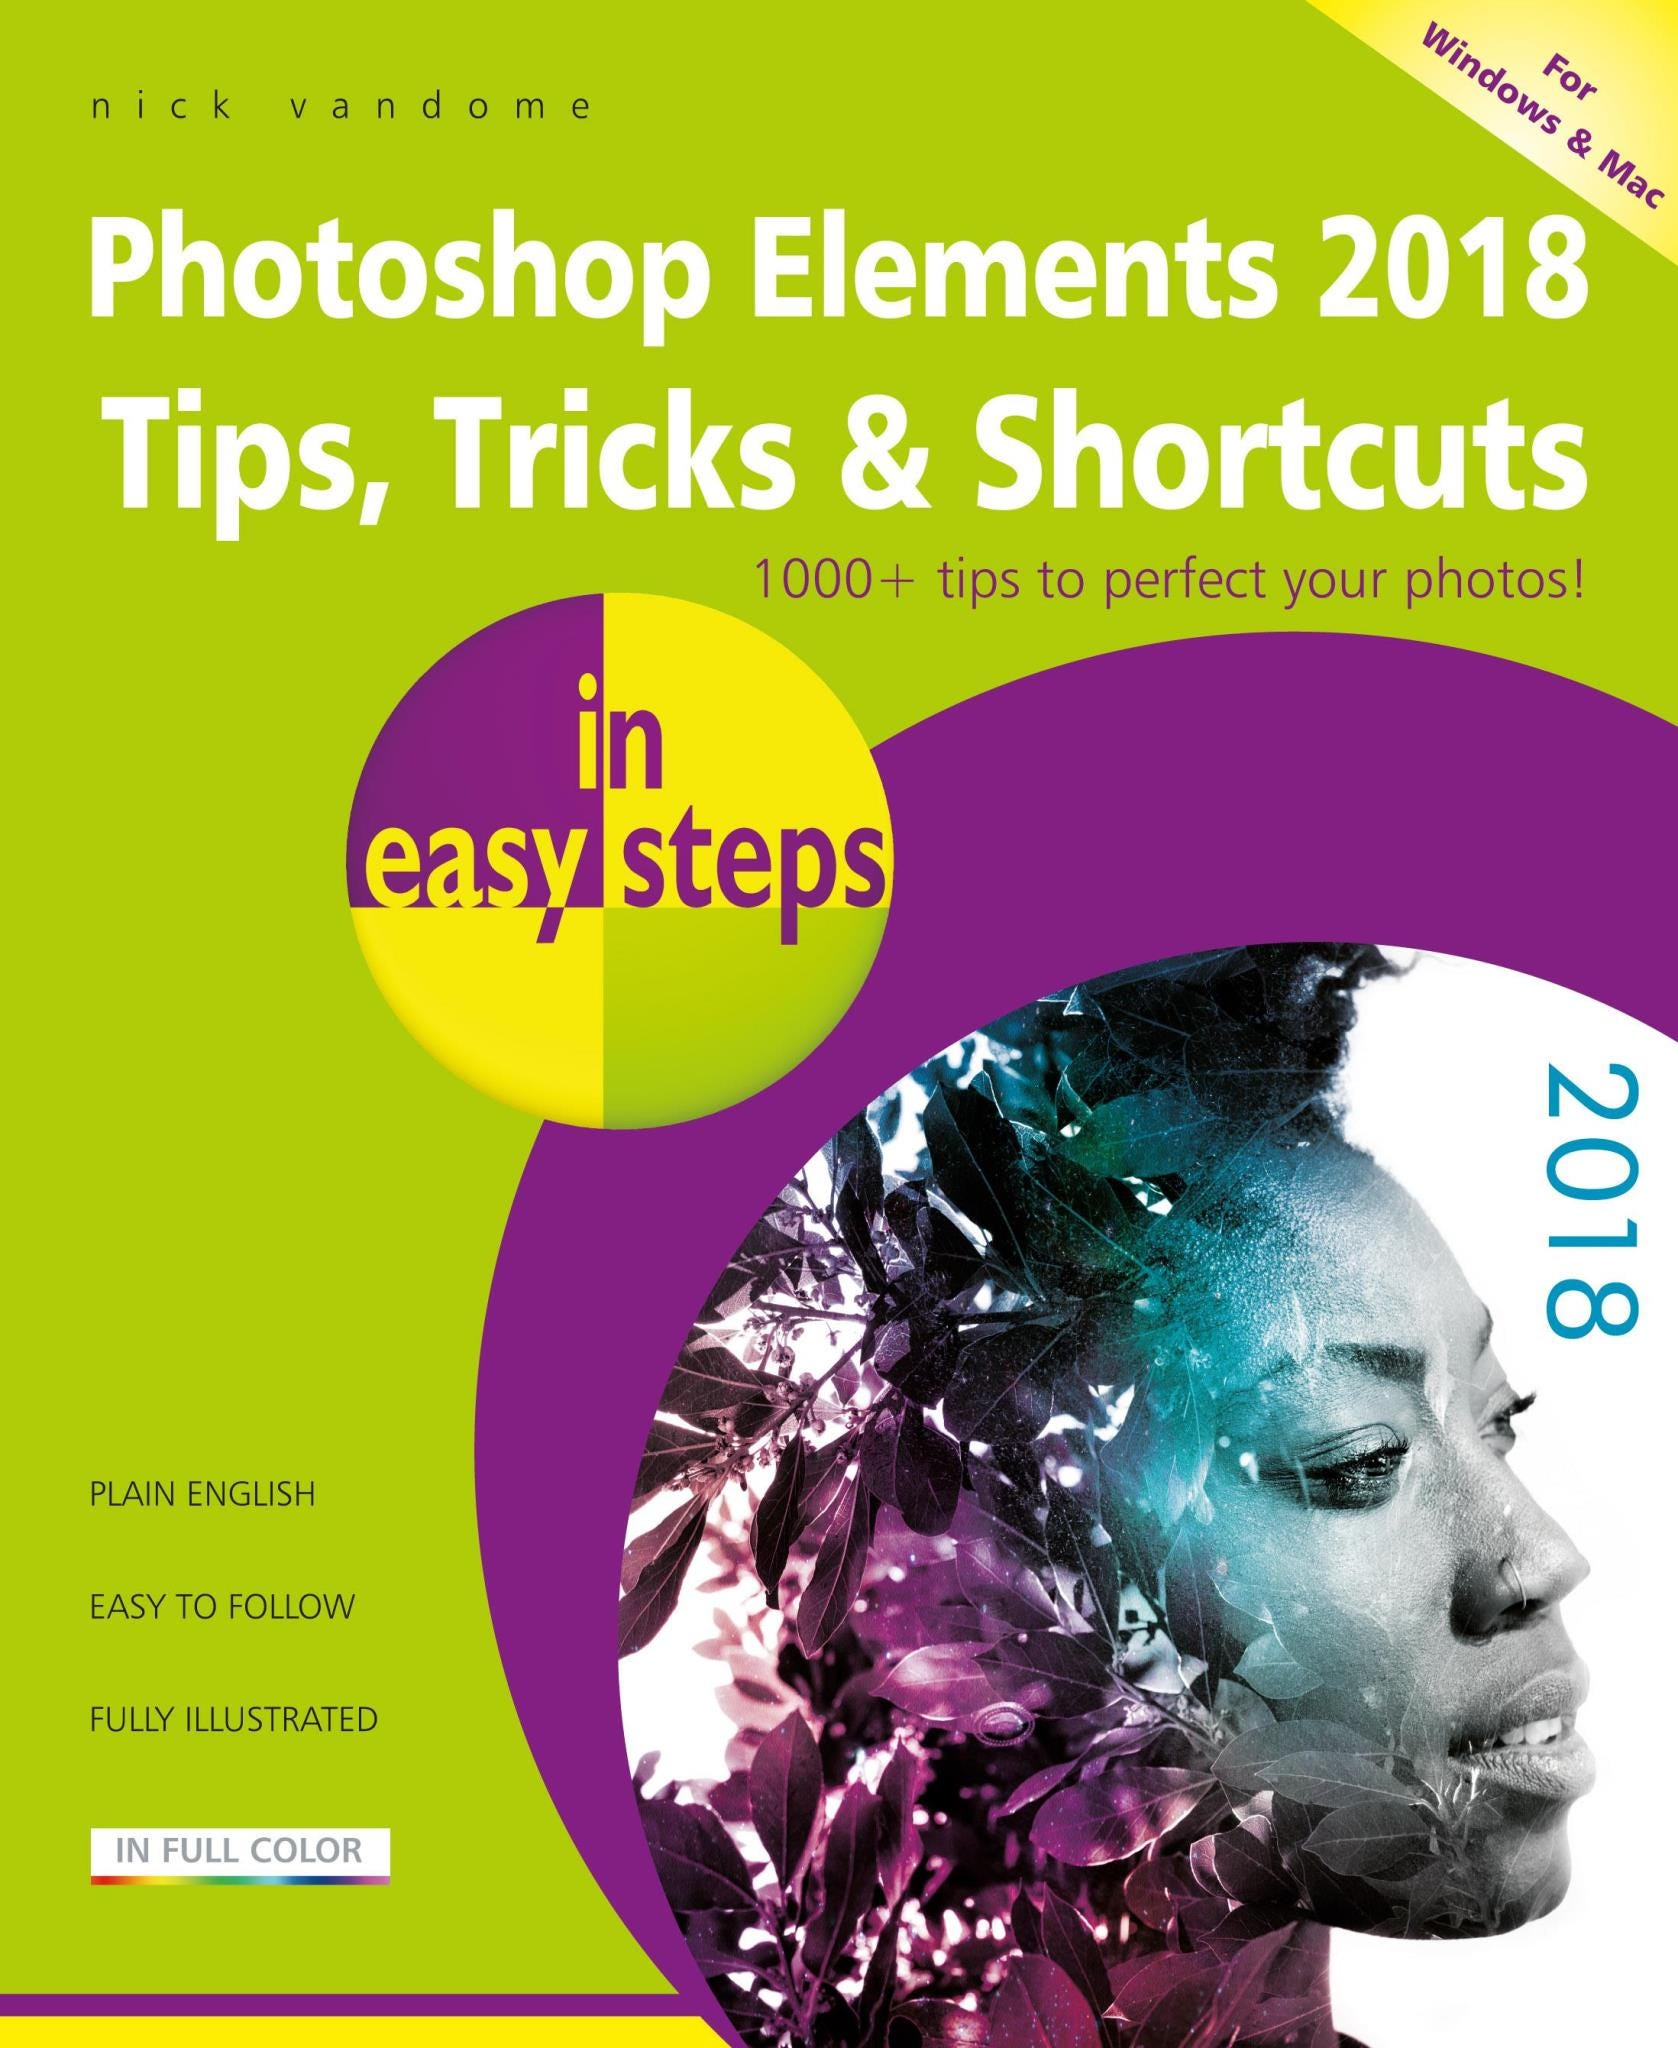 In Easy Steps Photoshop Elements 2018 Tips, Tricks & Shortcuts In Easy Steps